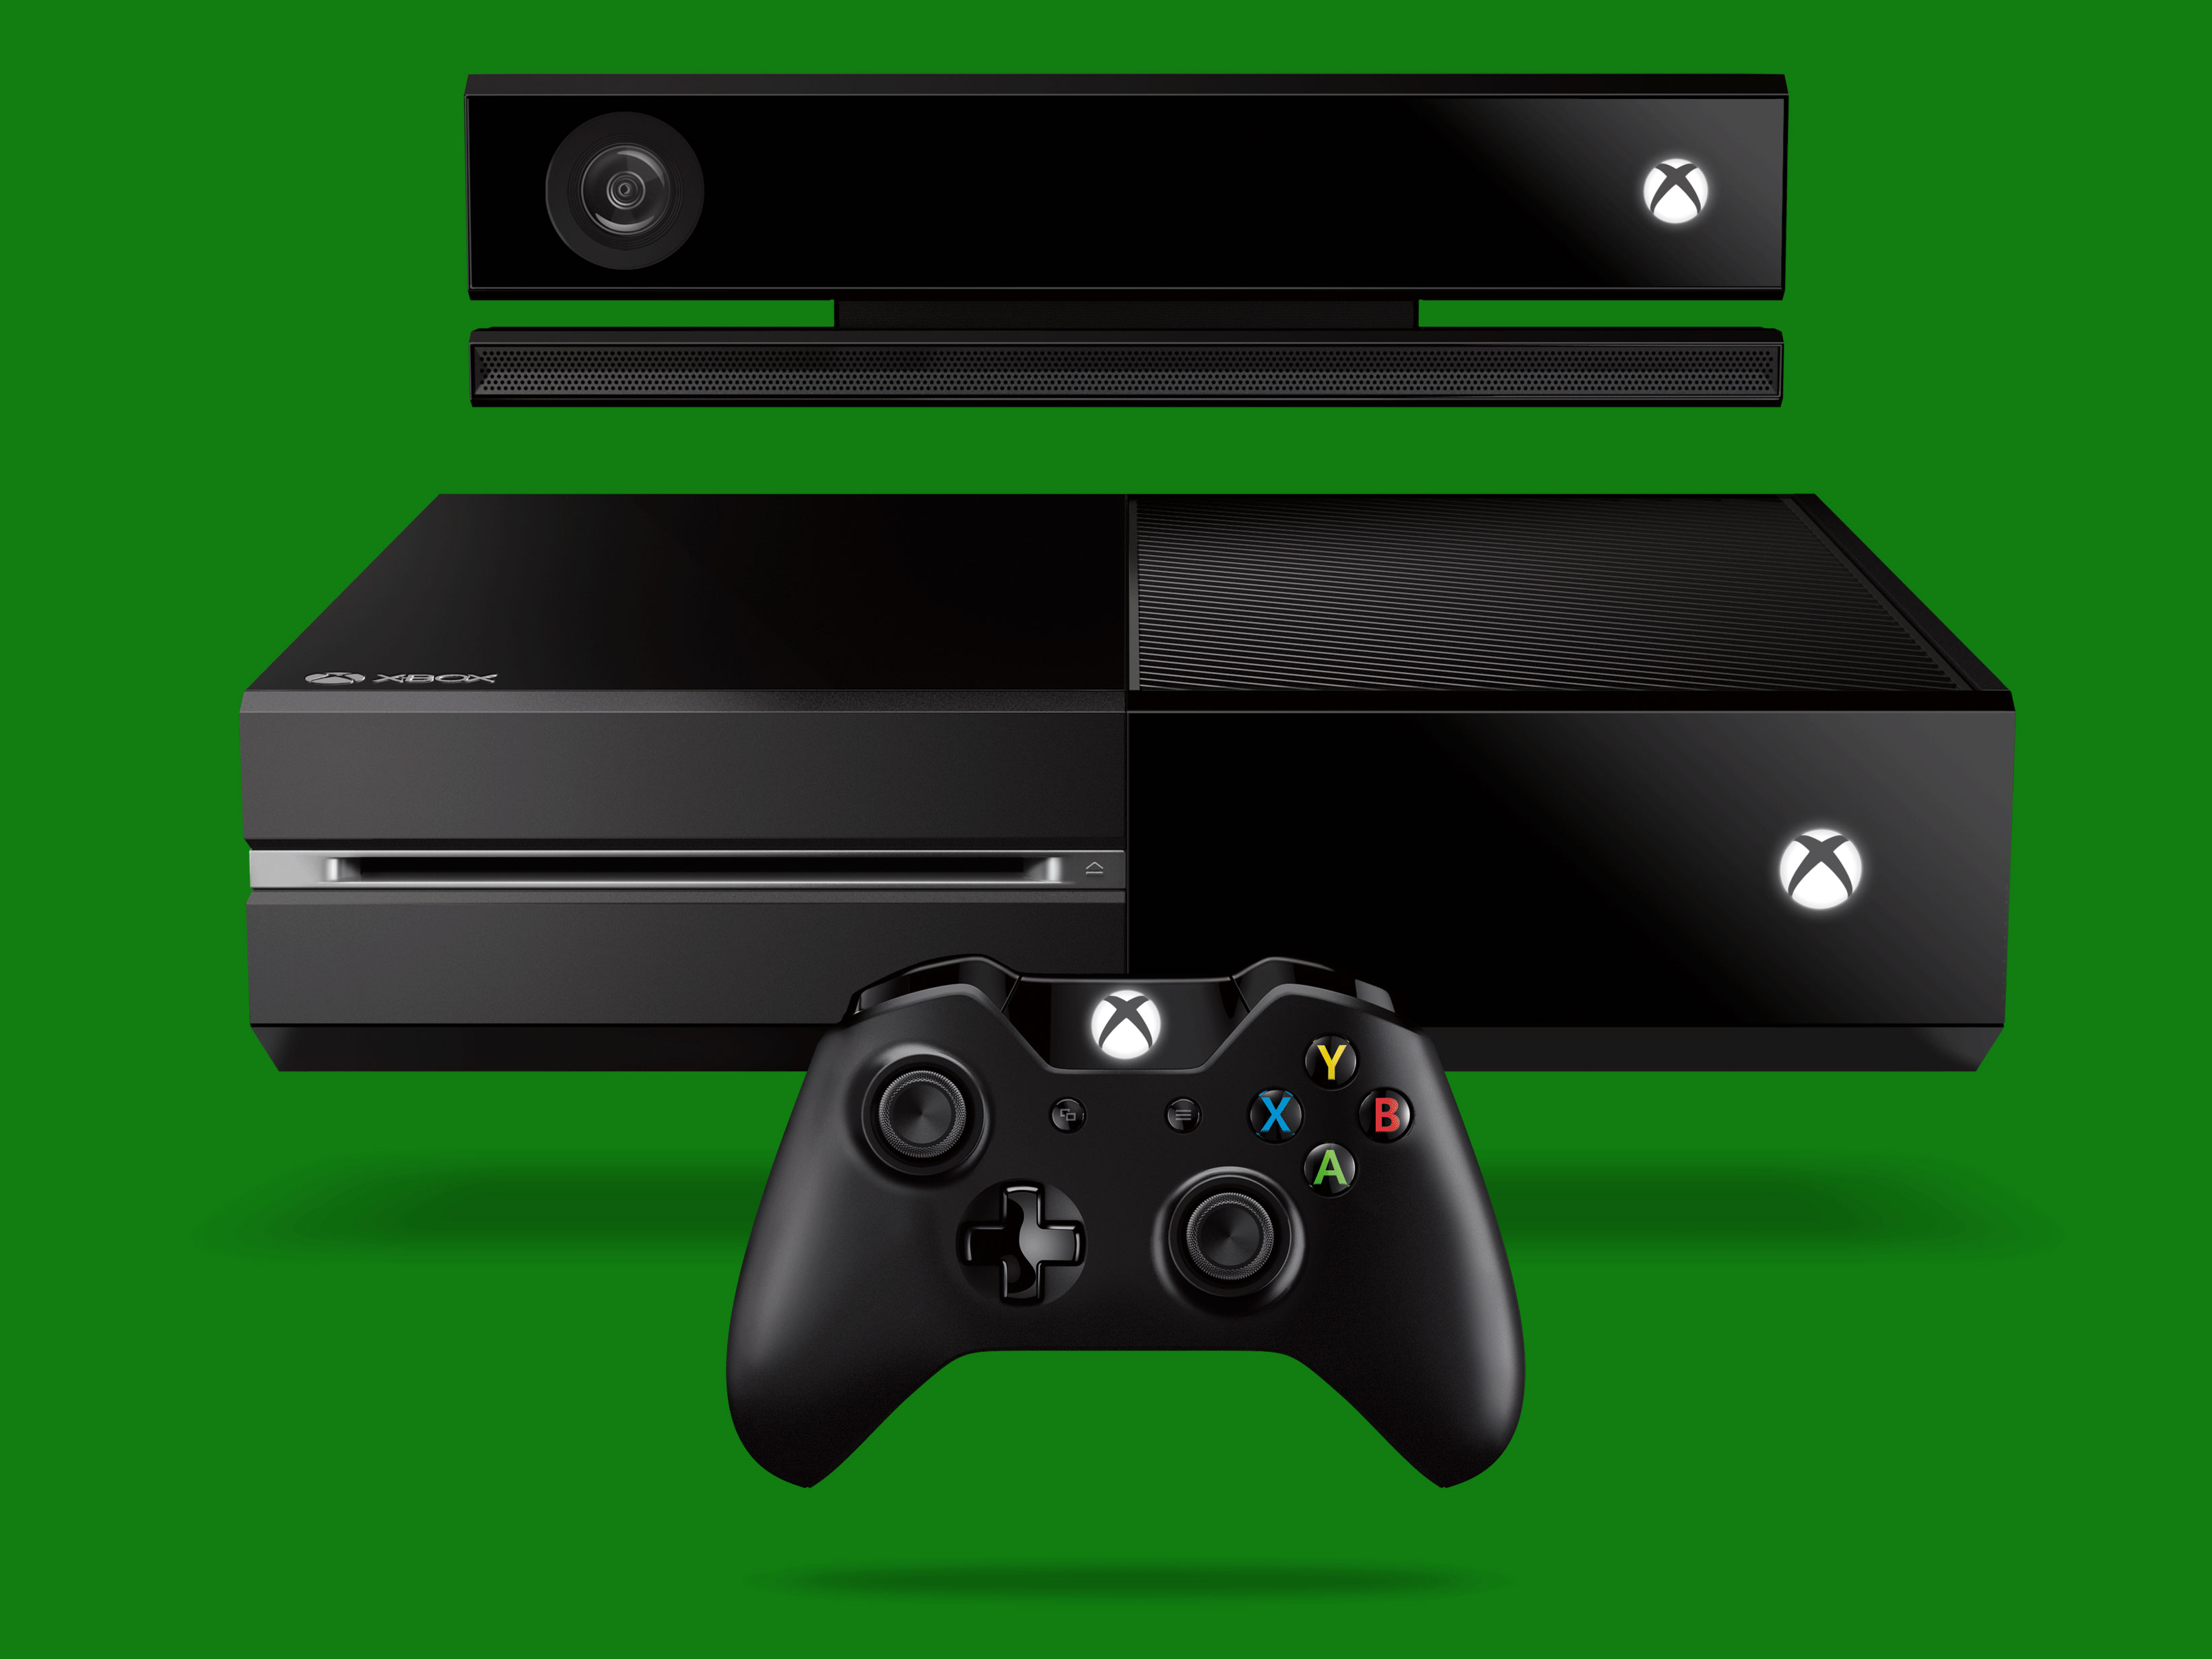 Console of Xbox One